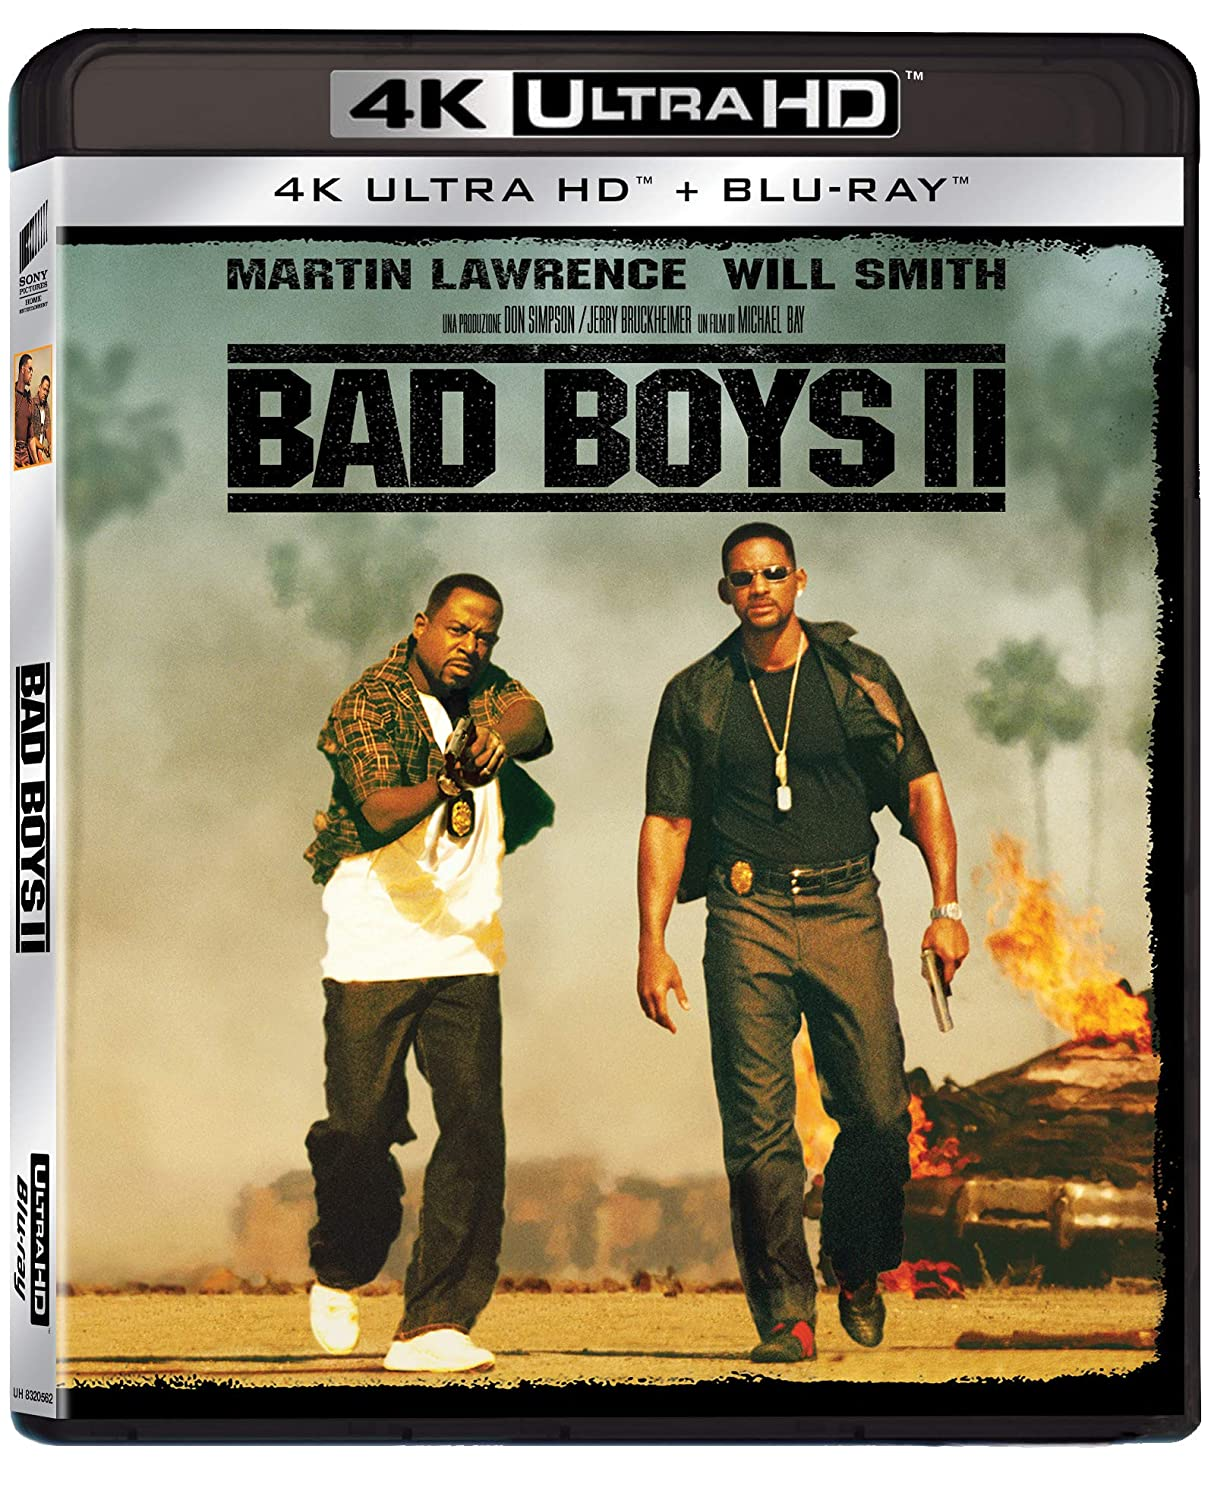 BAD BOYS II (4K UHD+BLU-RAY)